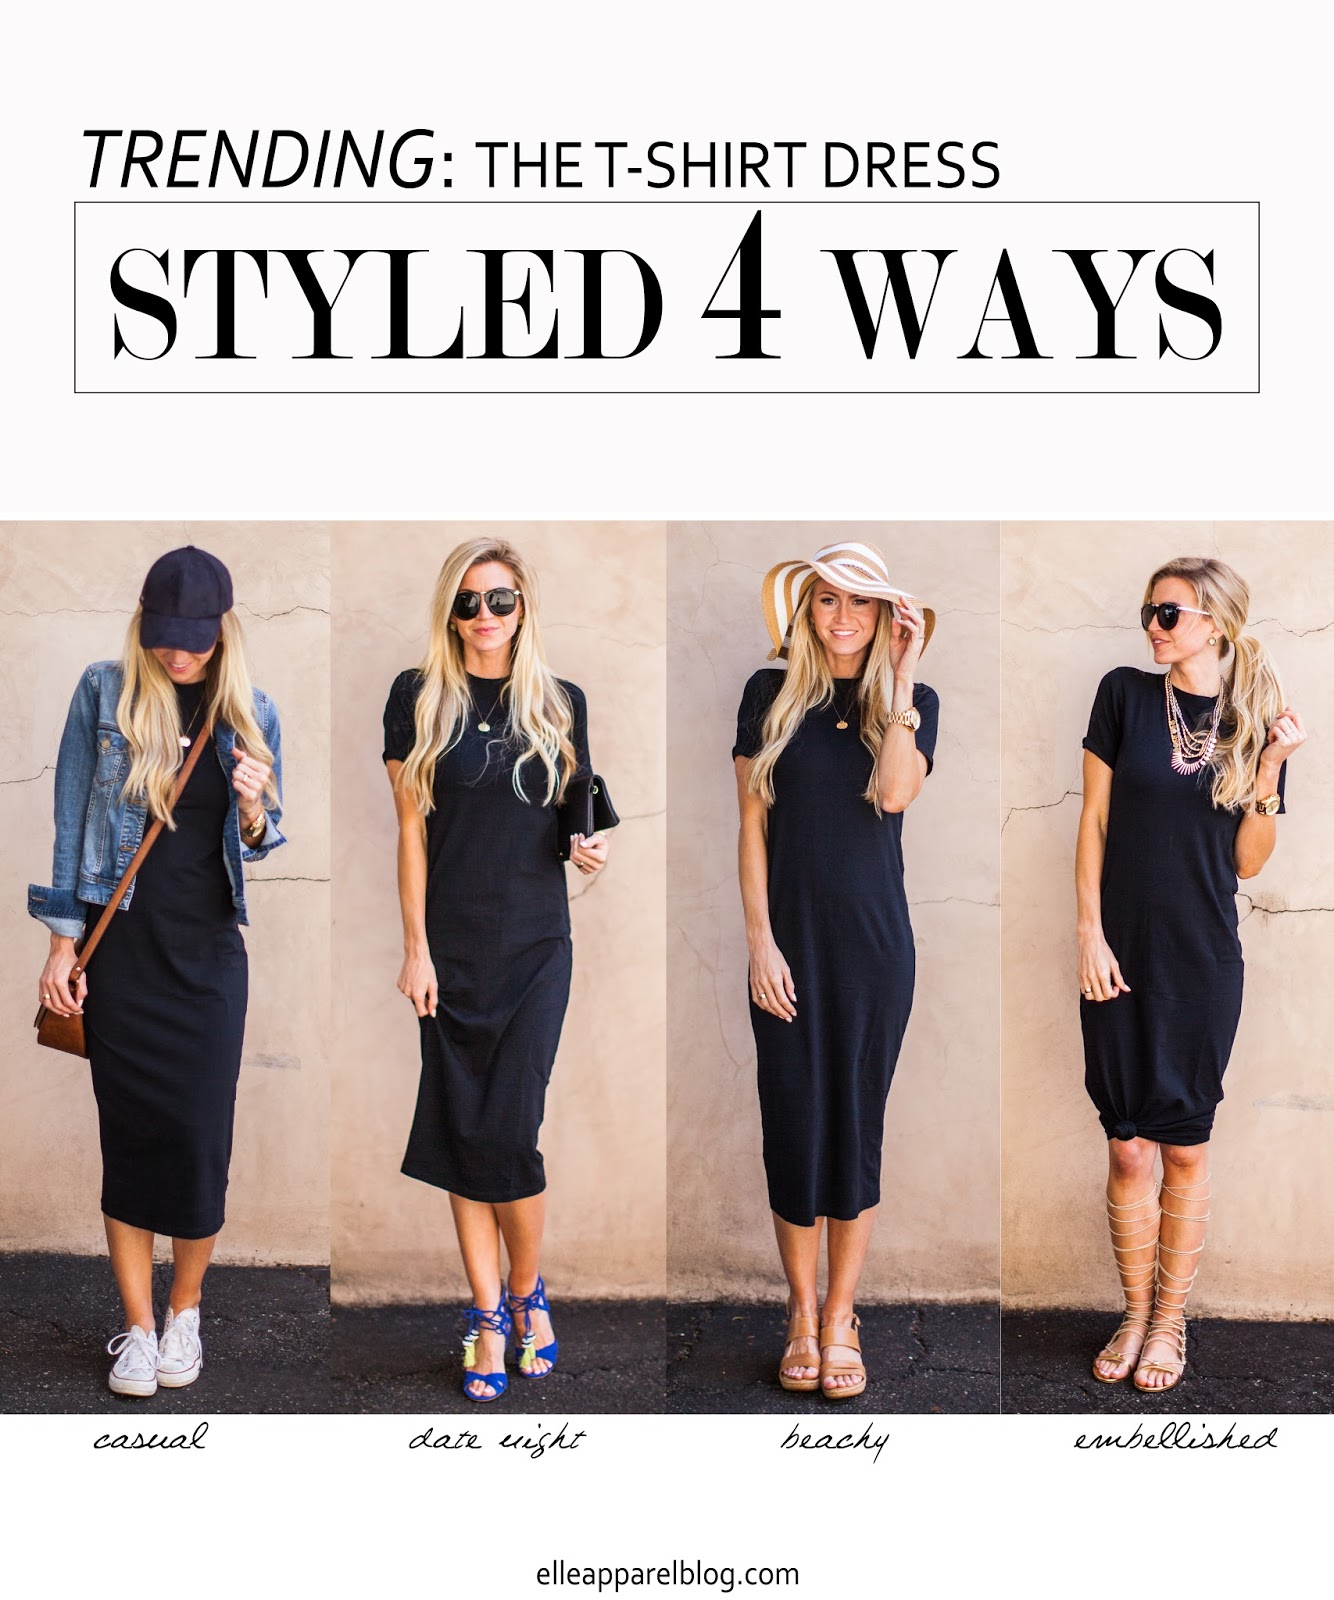 THE TOP TREND SERIES: FOUR WAYS TO STYLE A T-SHIRT DRESS